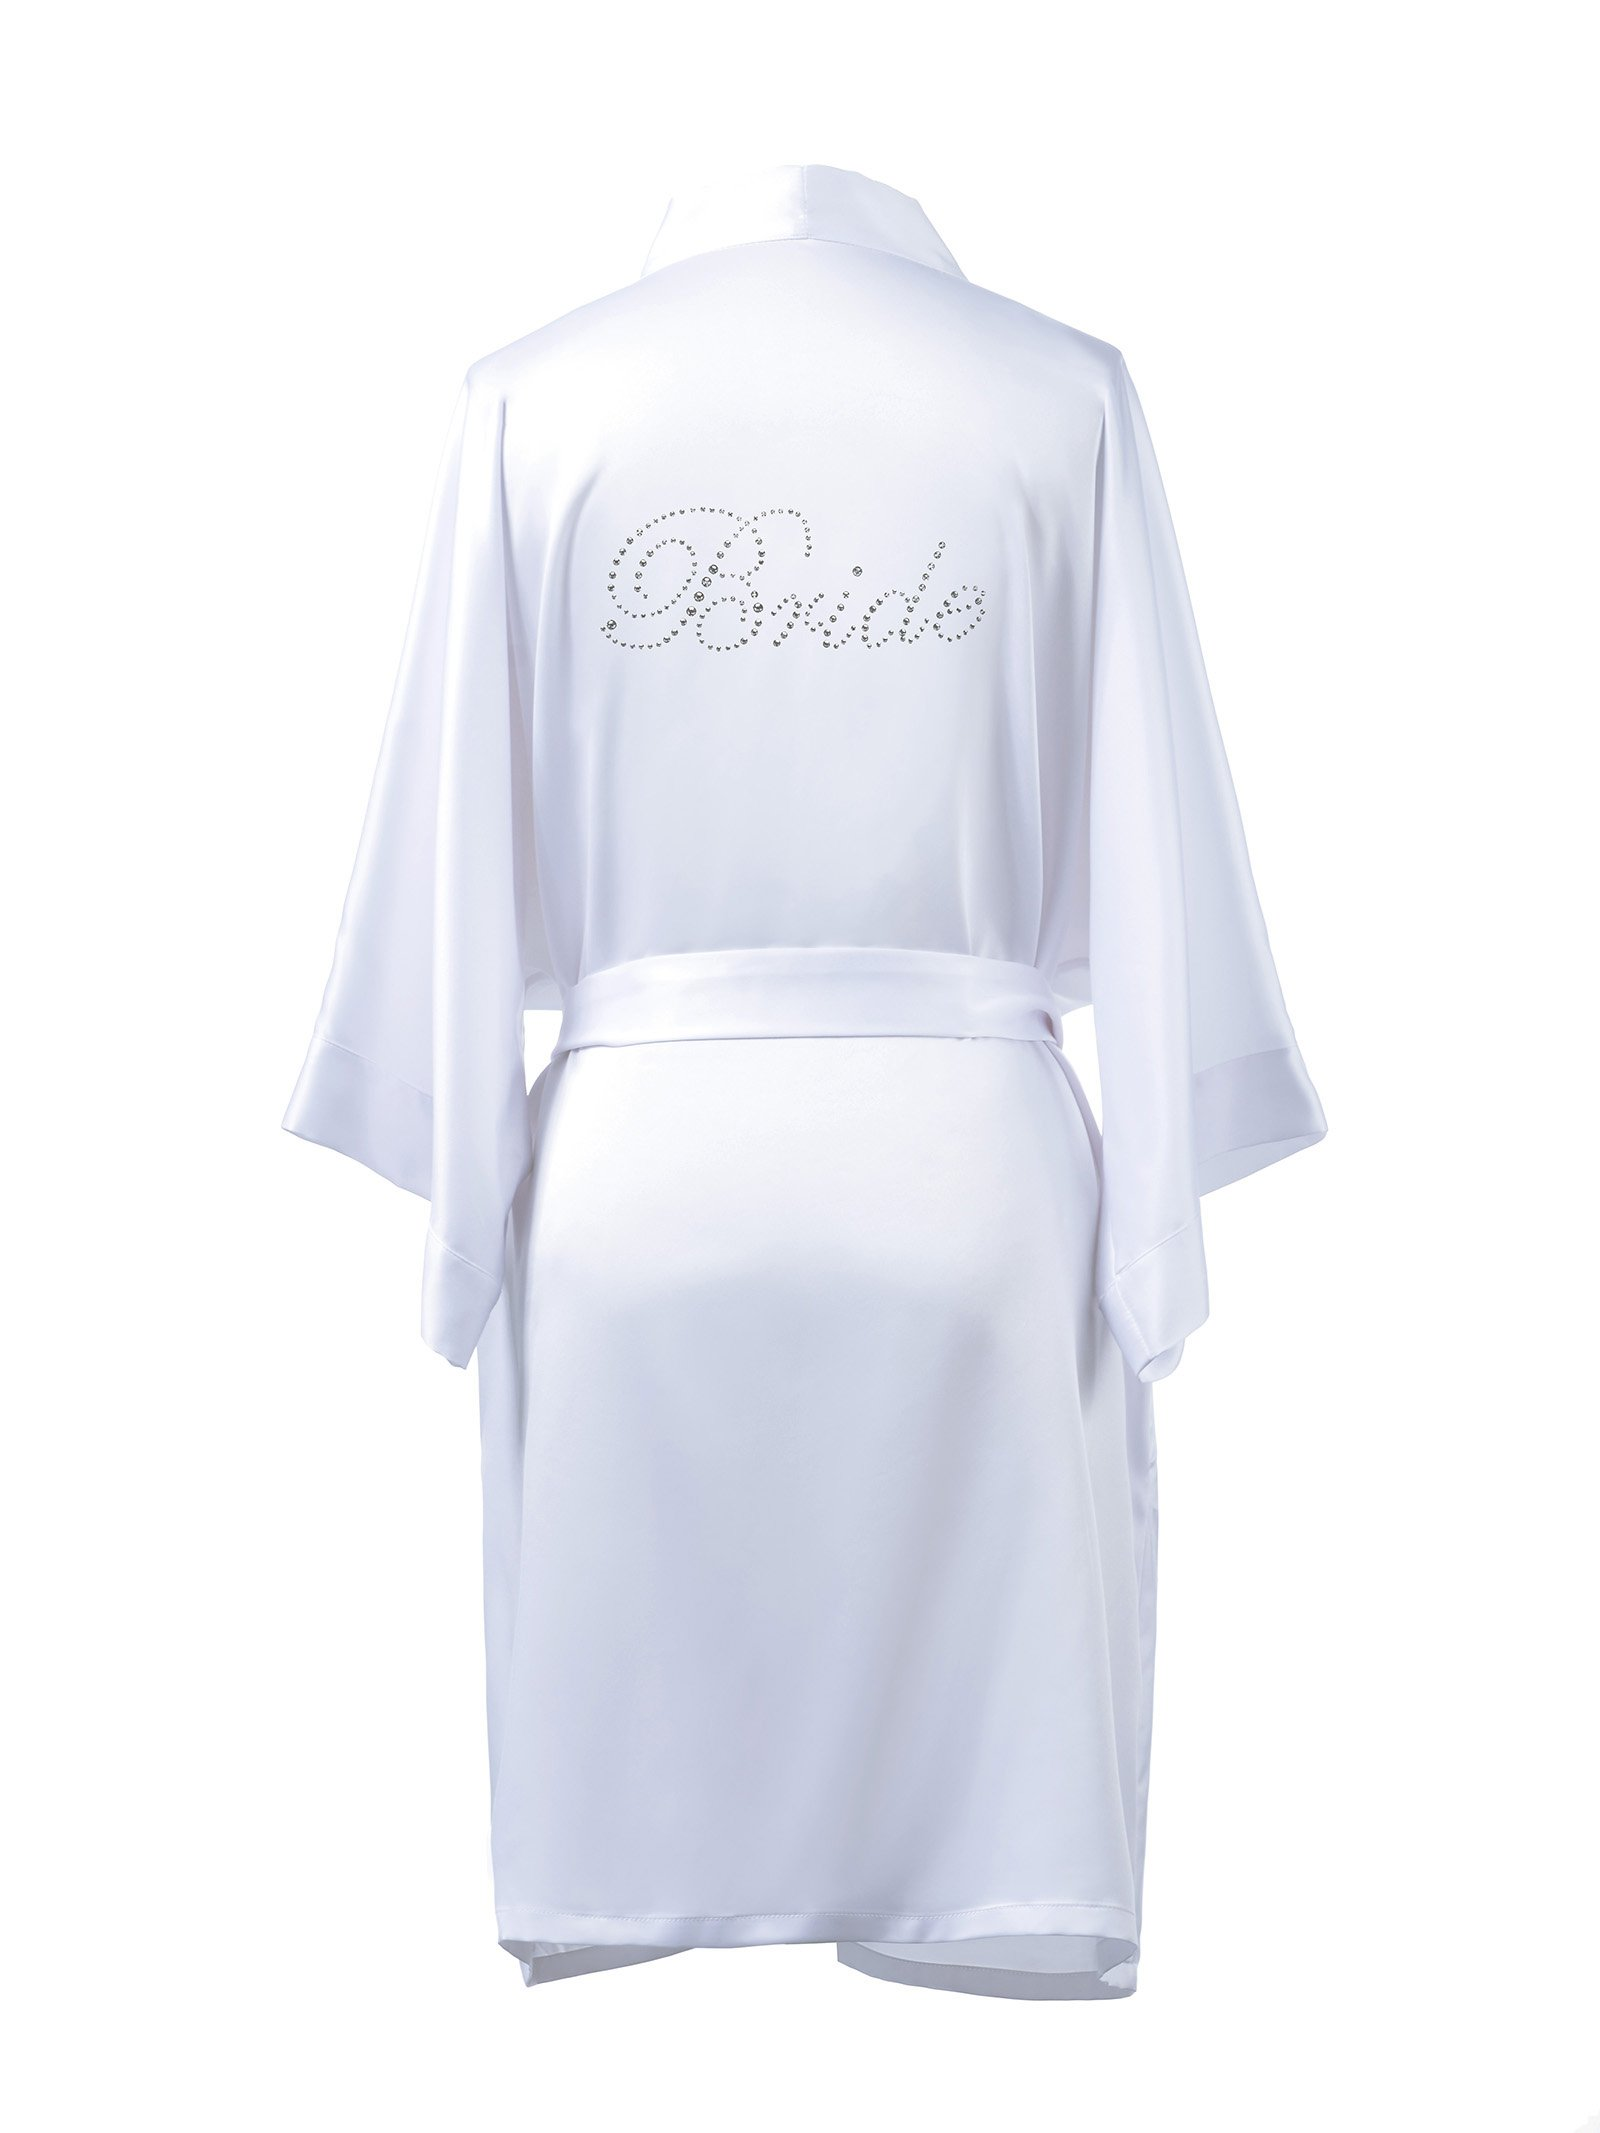 AWEI Satin Bride Robe Short Bridal Robe for Bride Gift Soft Womens Kimono Robe White M//ZS1604CPP02A//